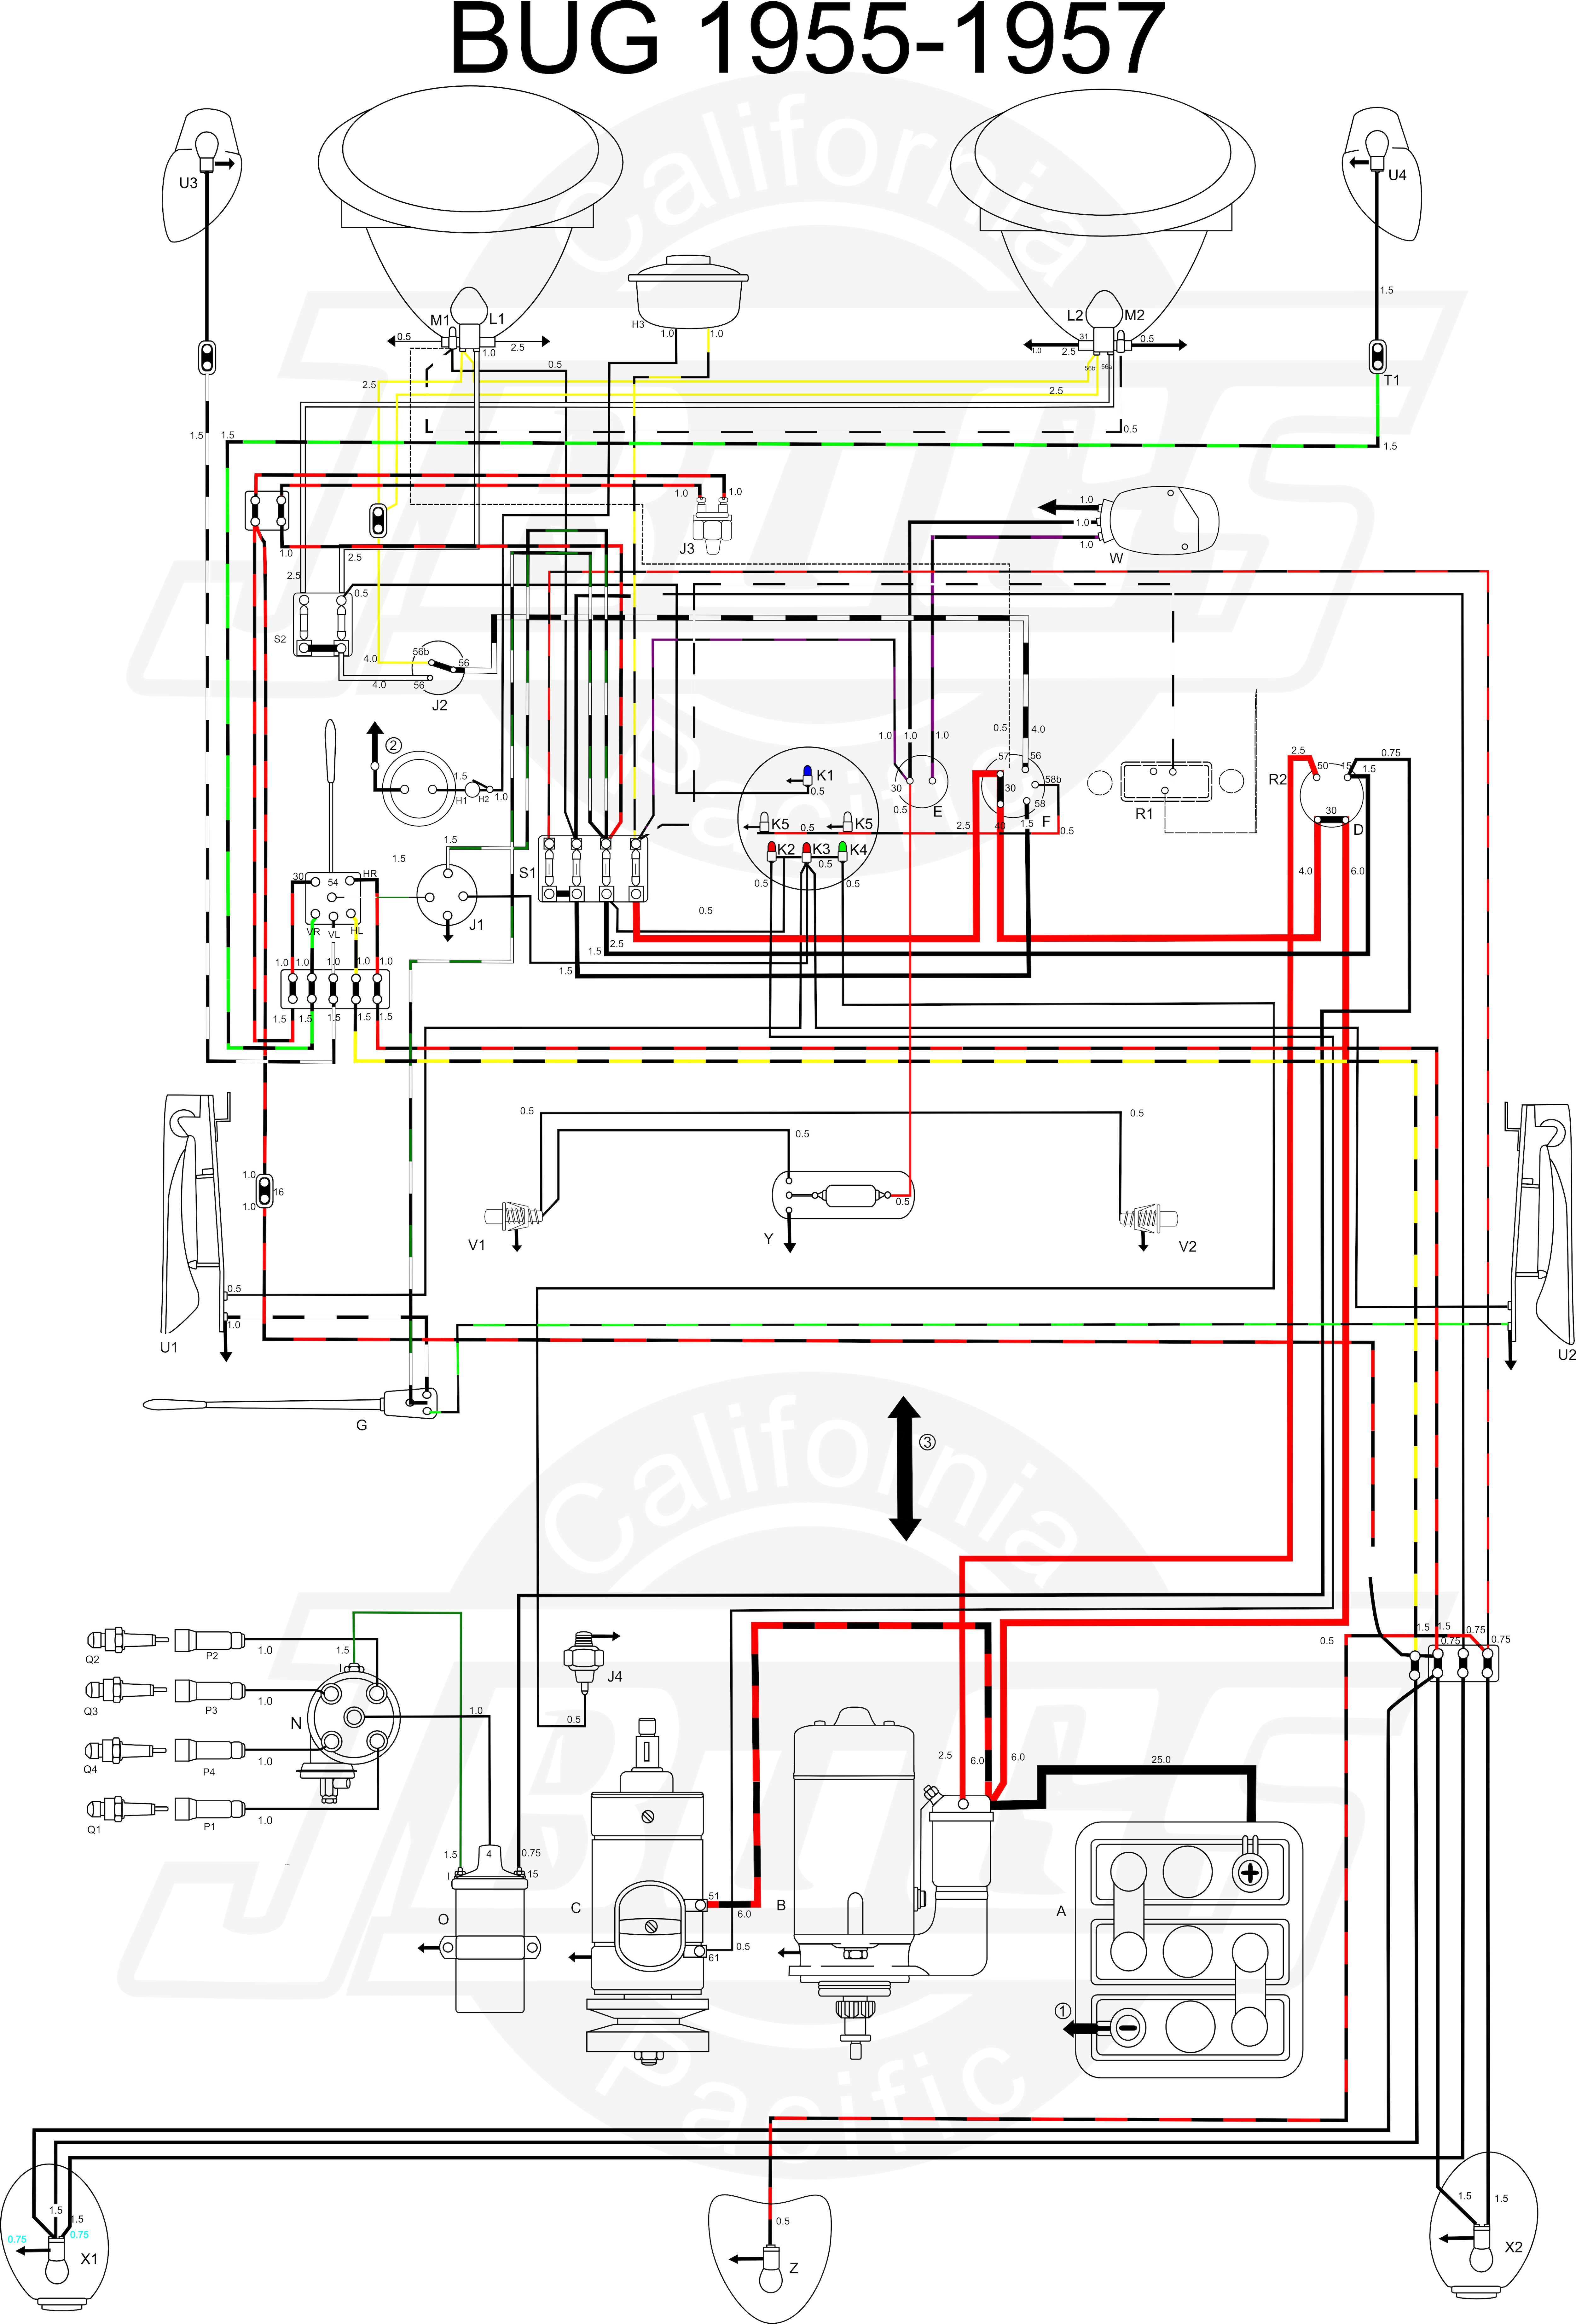 Honeywell Th5220D1029 Wiring Diagram from 2020cadillac.com